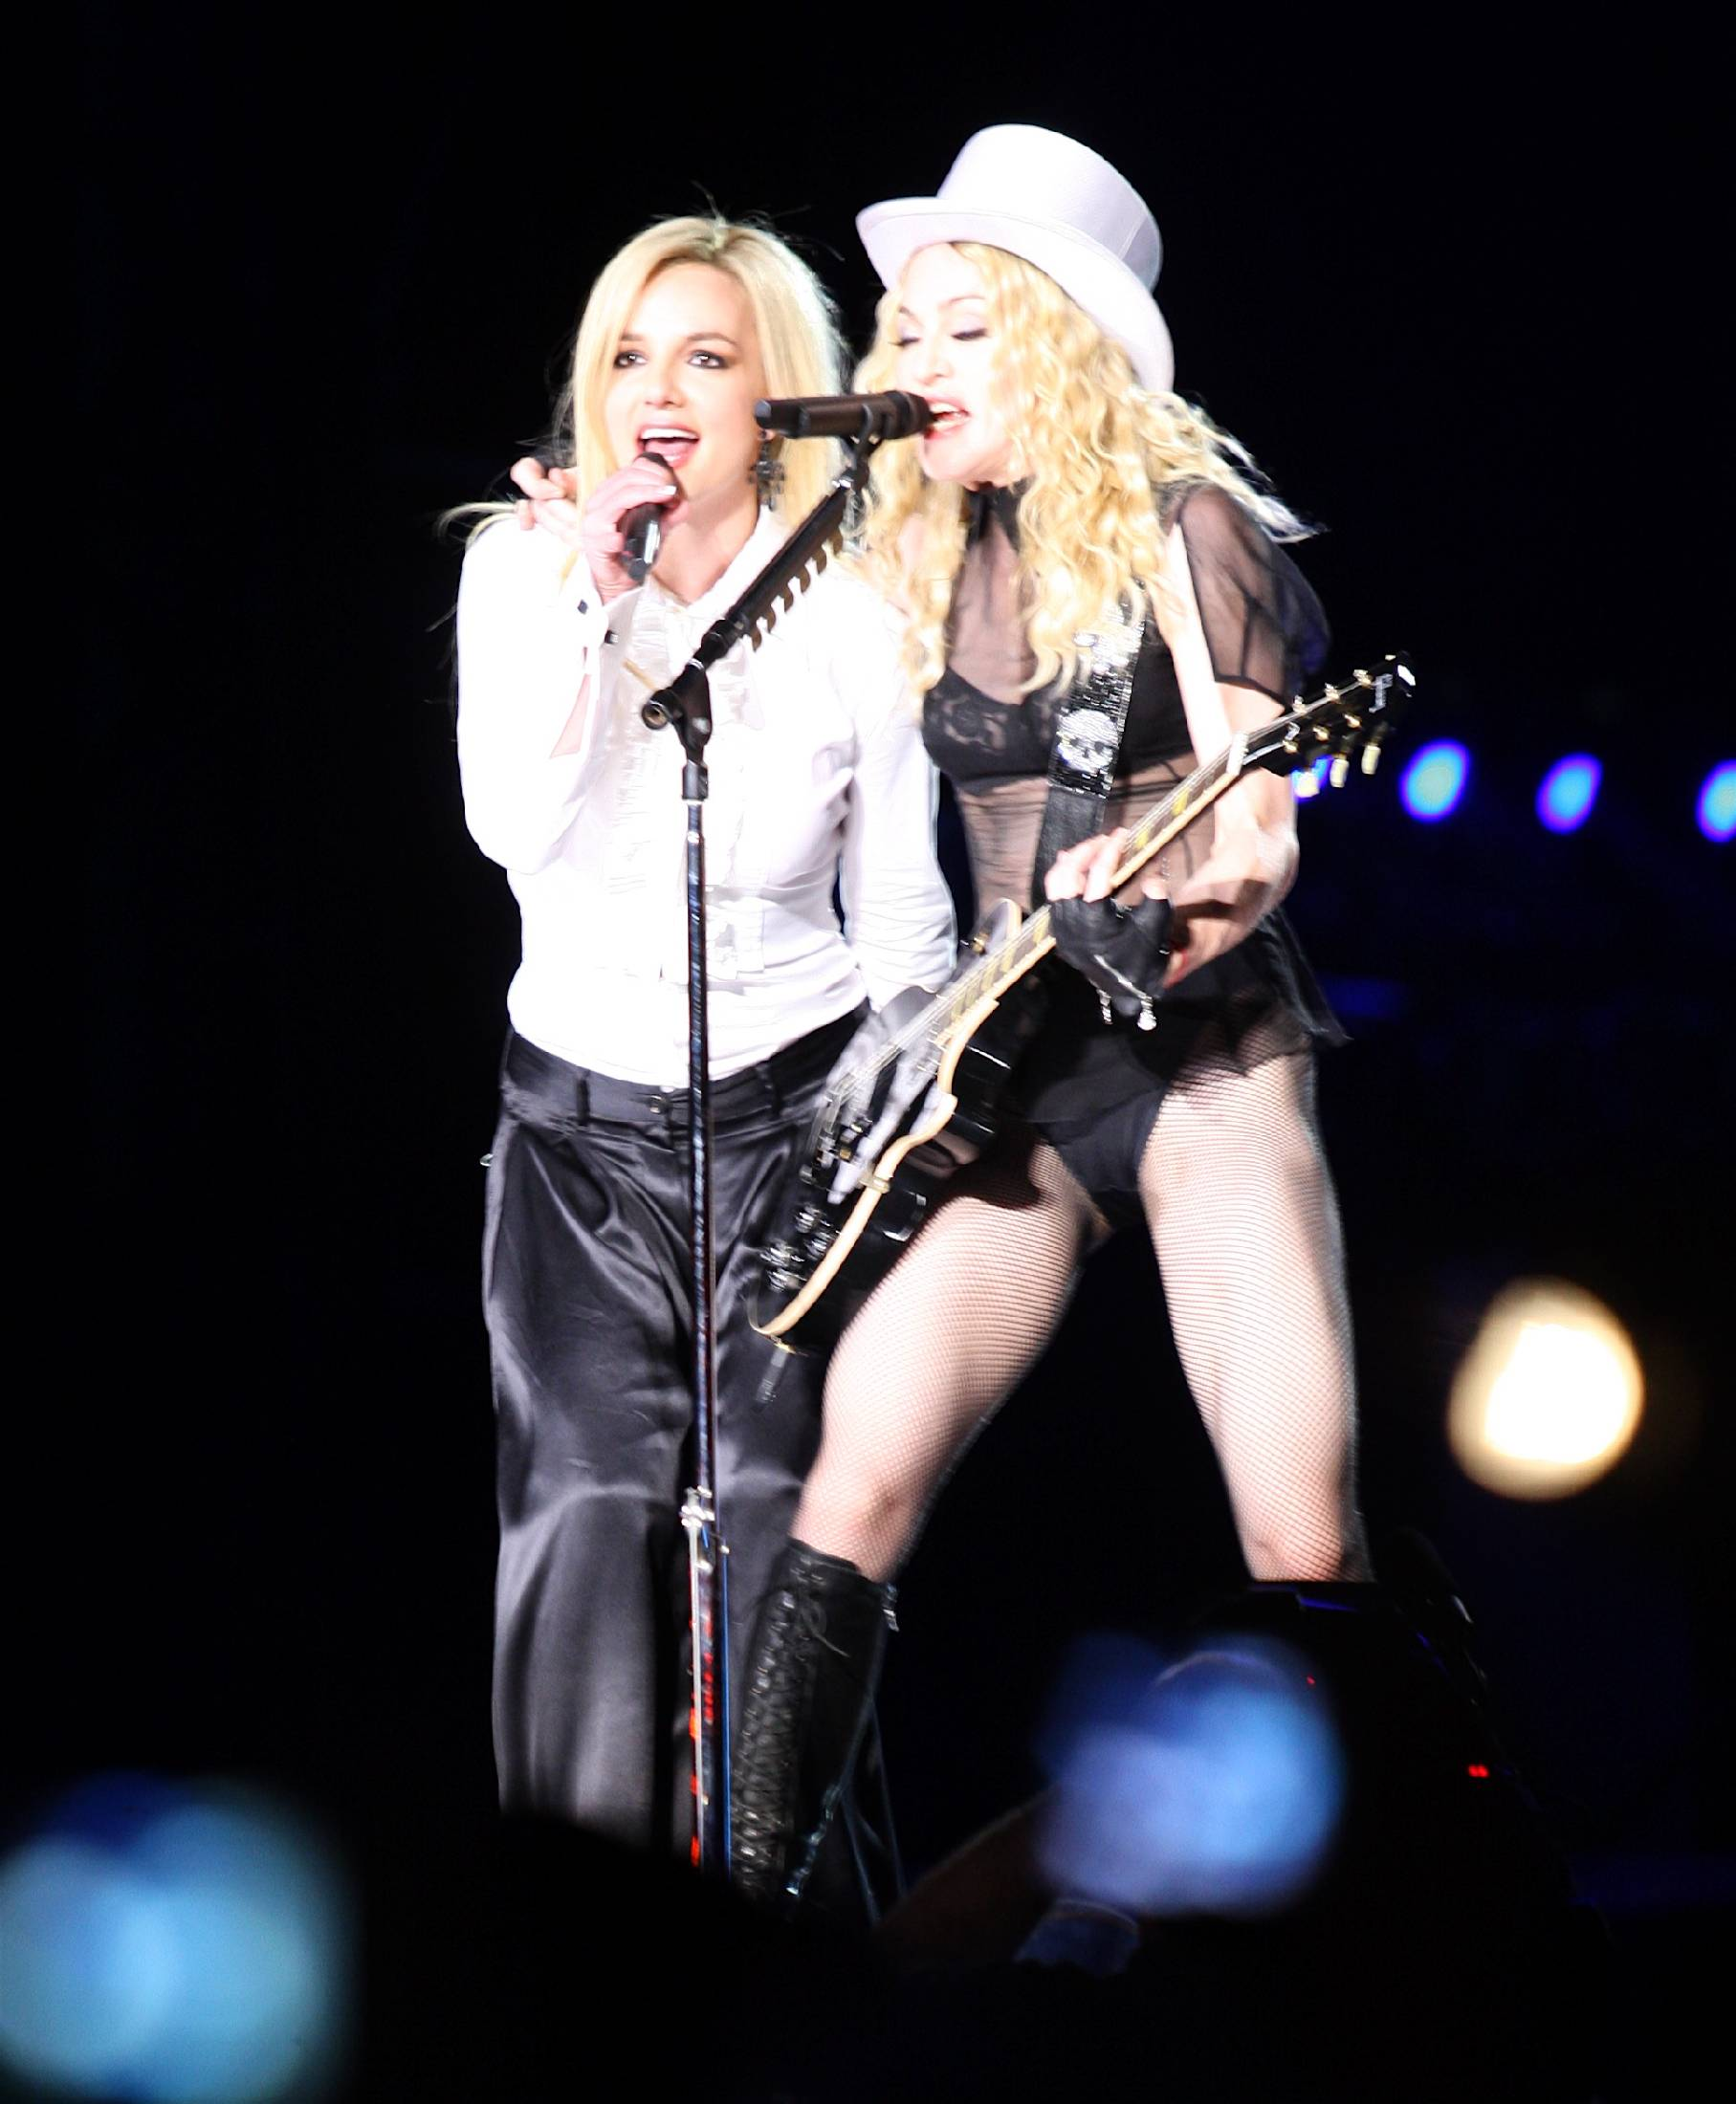 79667_Celebutopia-Madonna_and_Britney_Spears_perform_together_during_Madonna4s_Sticky_and_Sweet_tour_in_Los_Angeles-05_122_1027lo.jpg